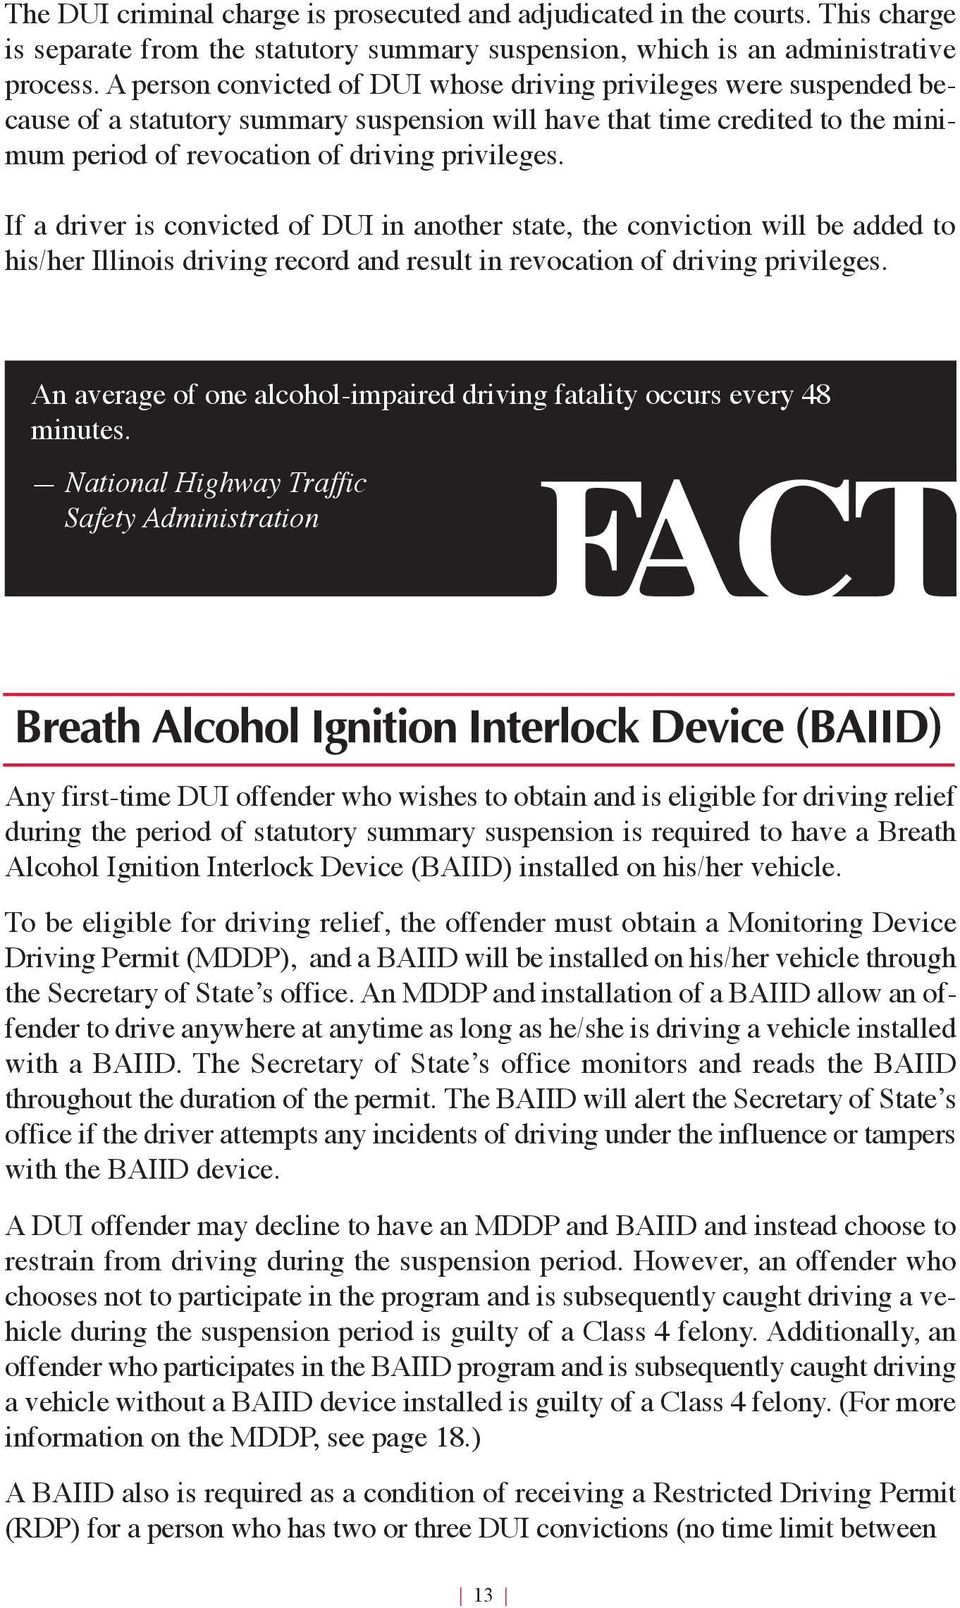 If a driver is convicted of DUI in another state, the conviction will be added to his/her Illinois driving record and result in revocation of driving privileges.